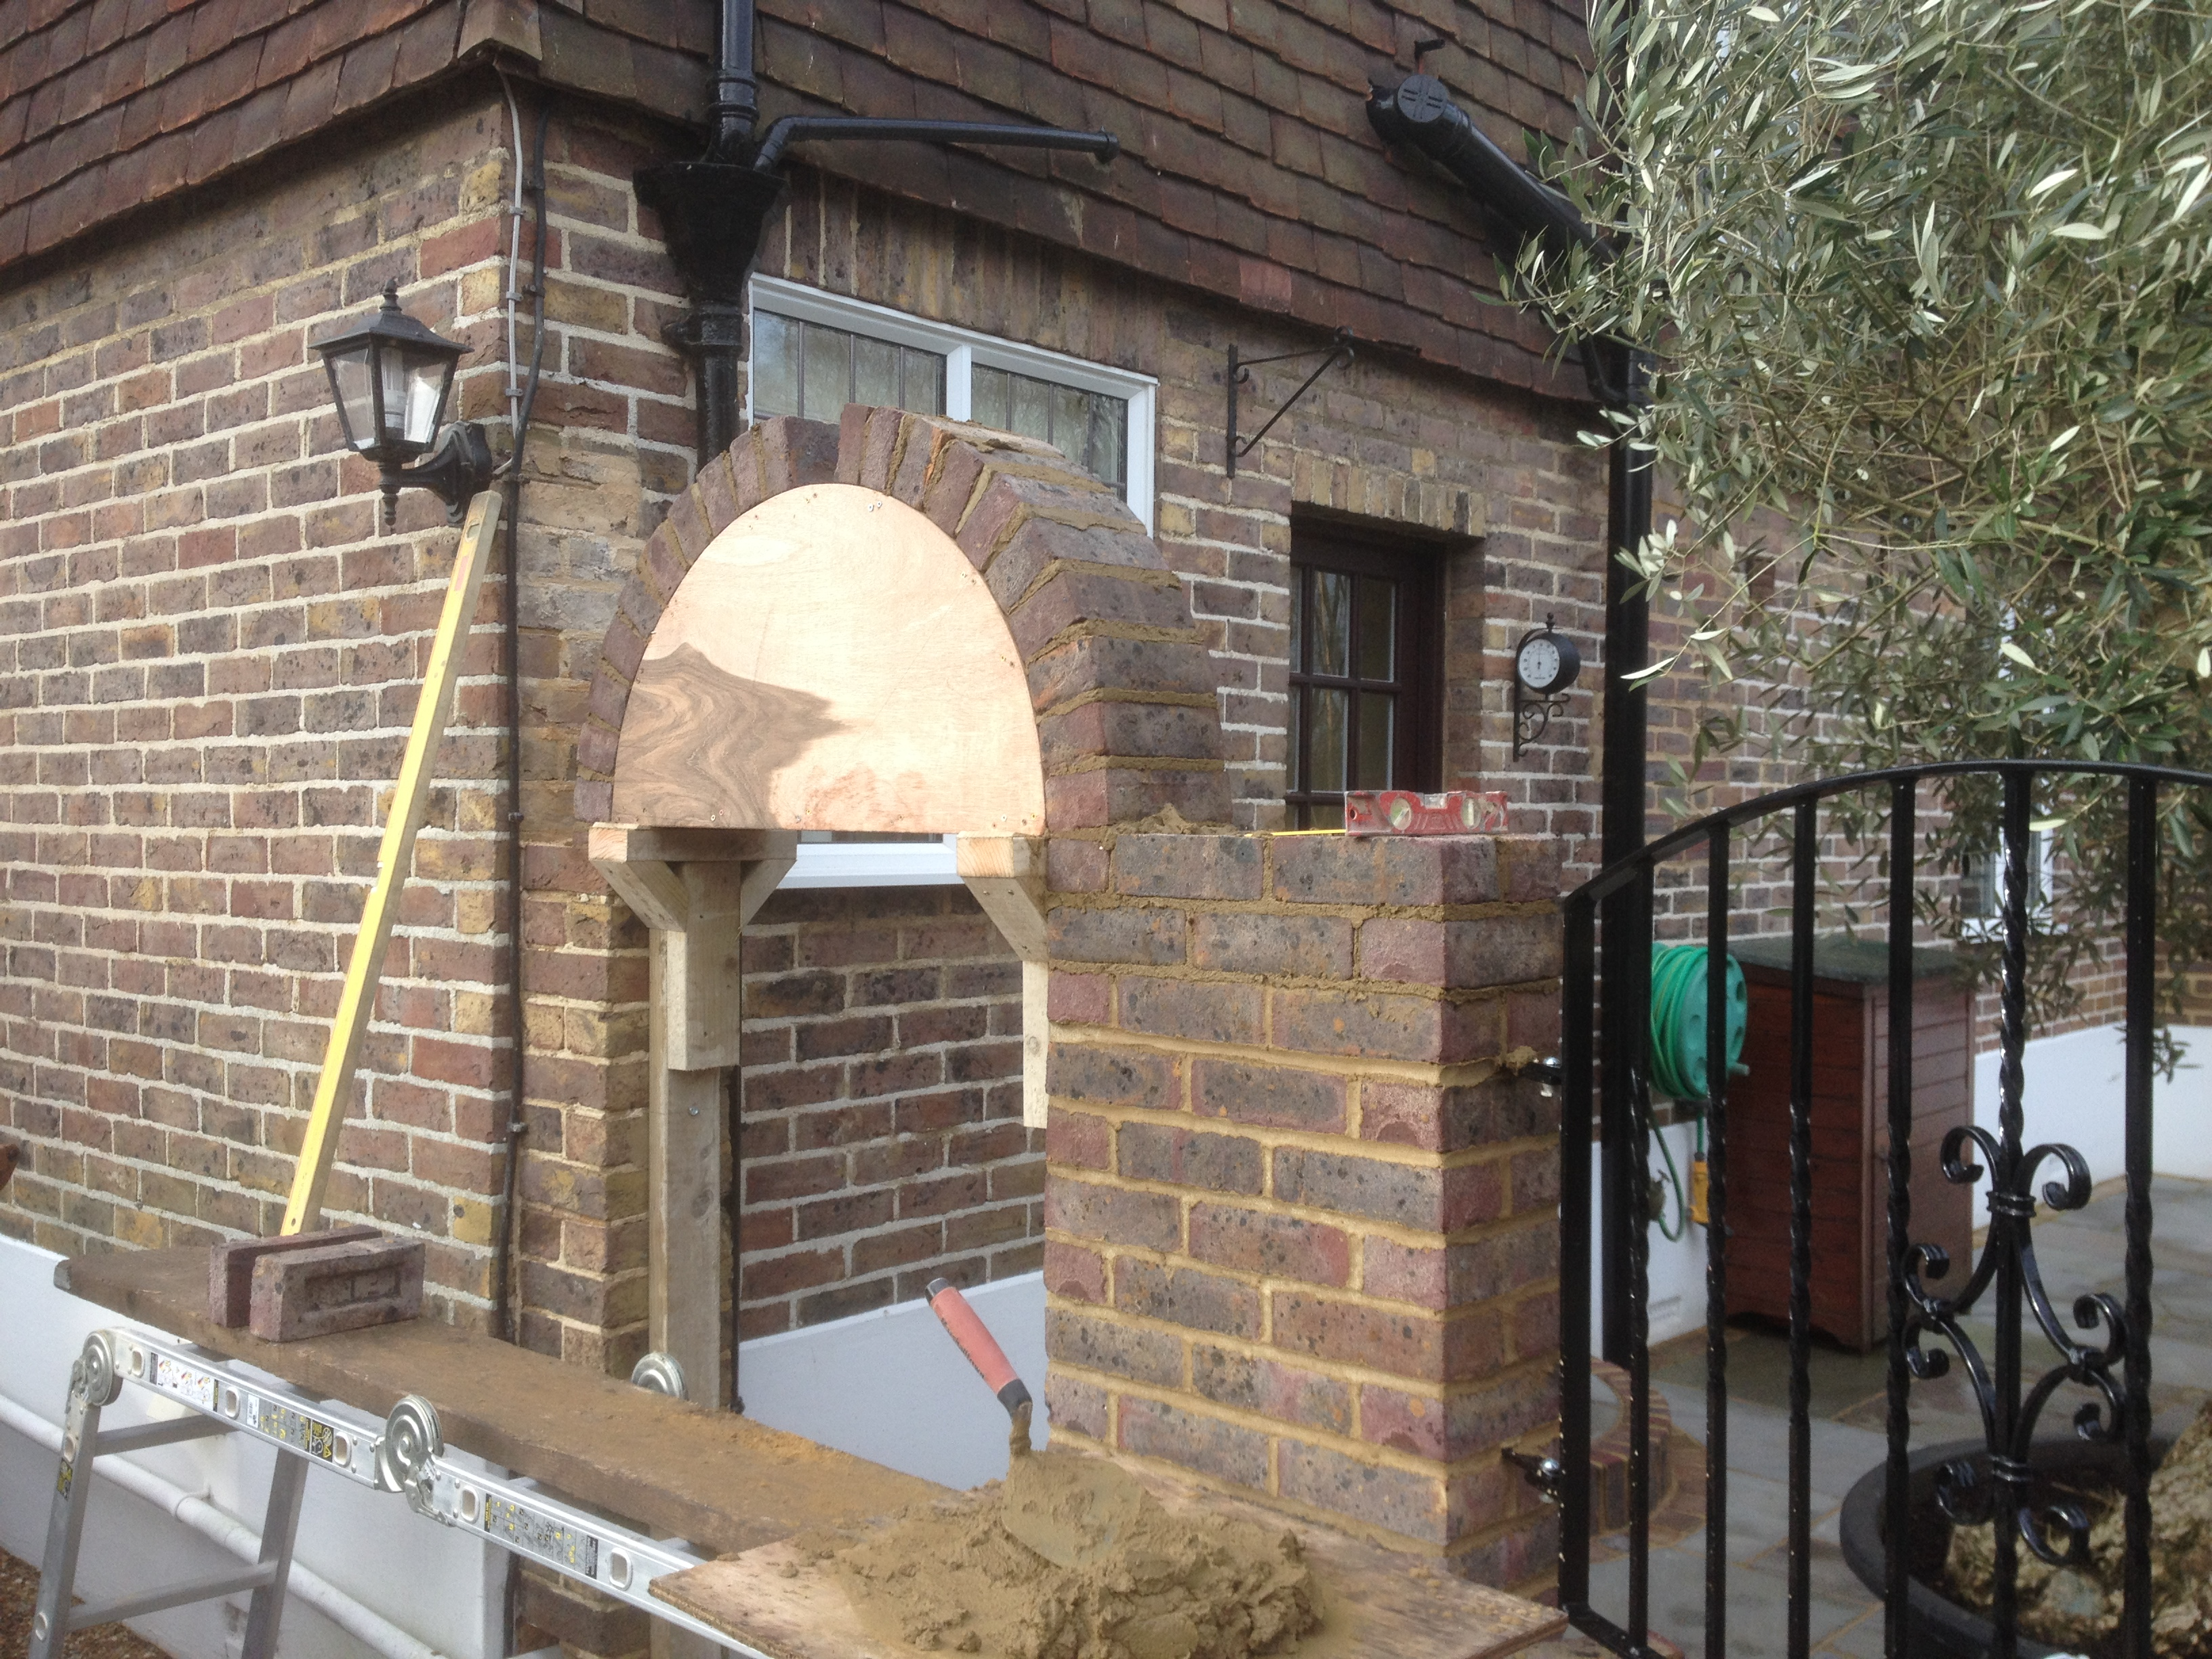 horsmonden has construction cured iron formwork decorative under brickwork project supports until uk timber stratalandscapes panels brick the wall img co with it wrought decor archway